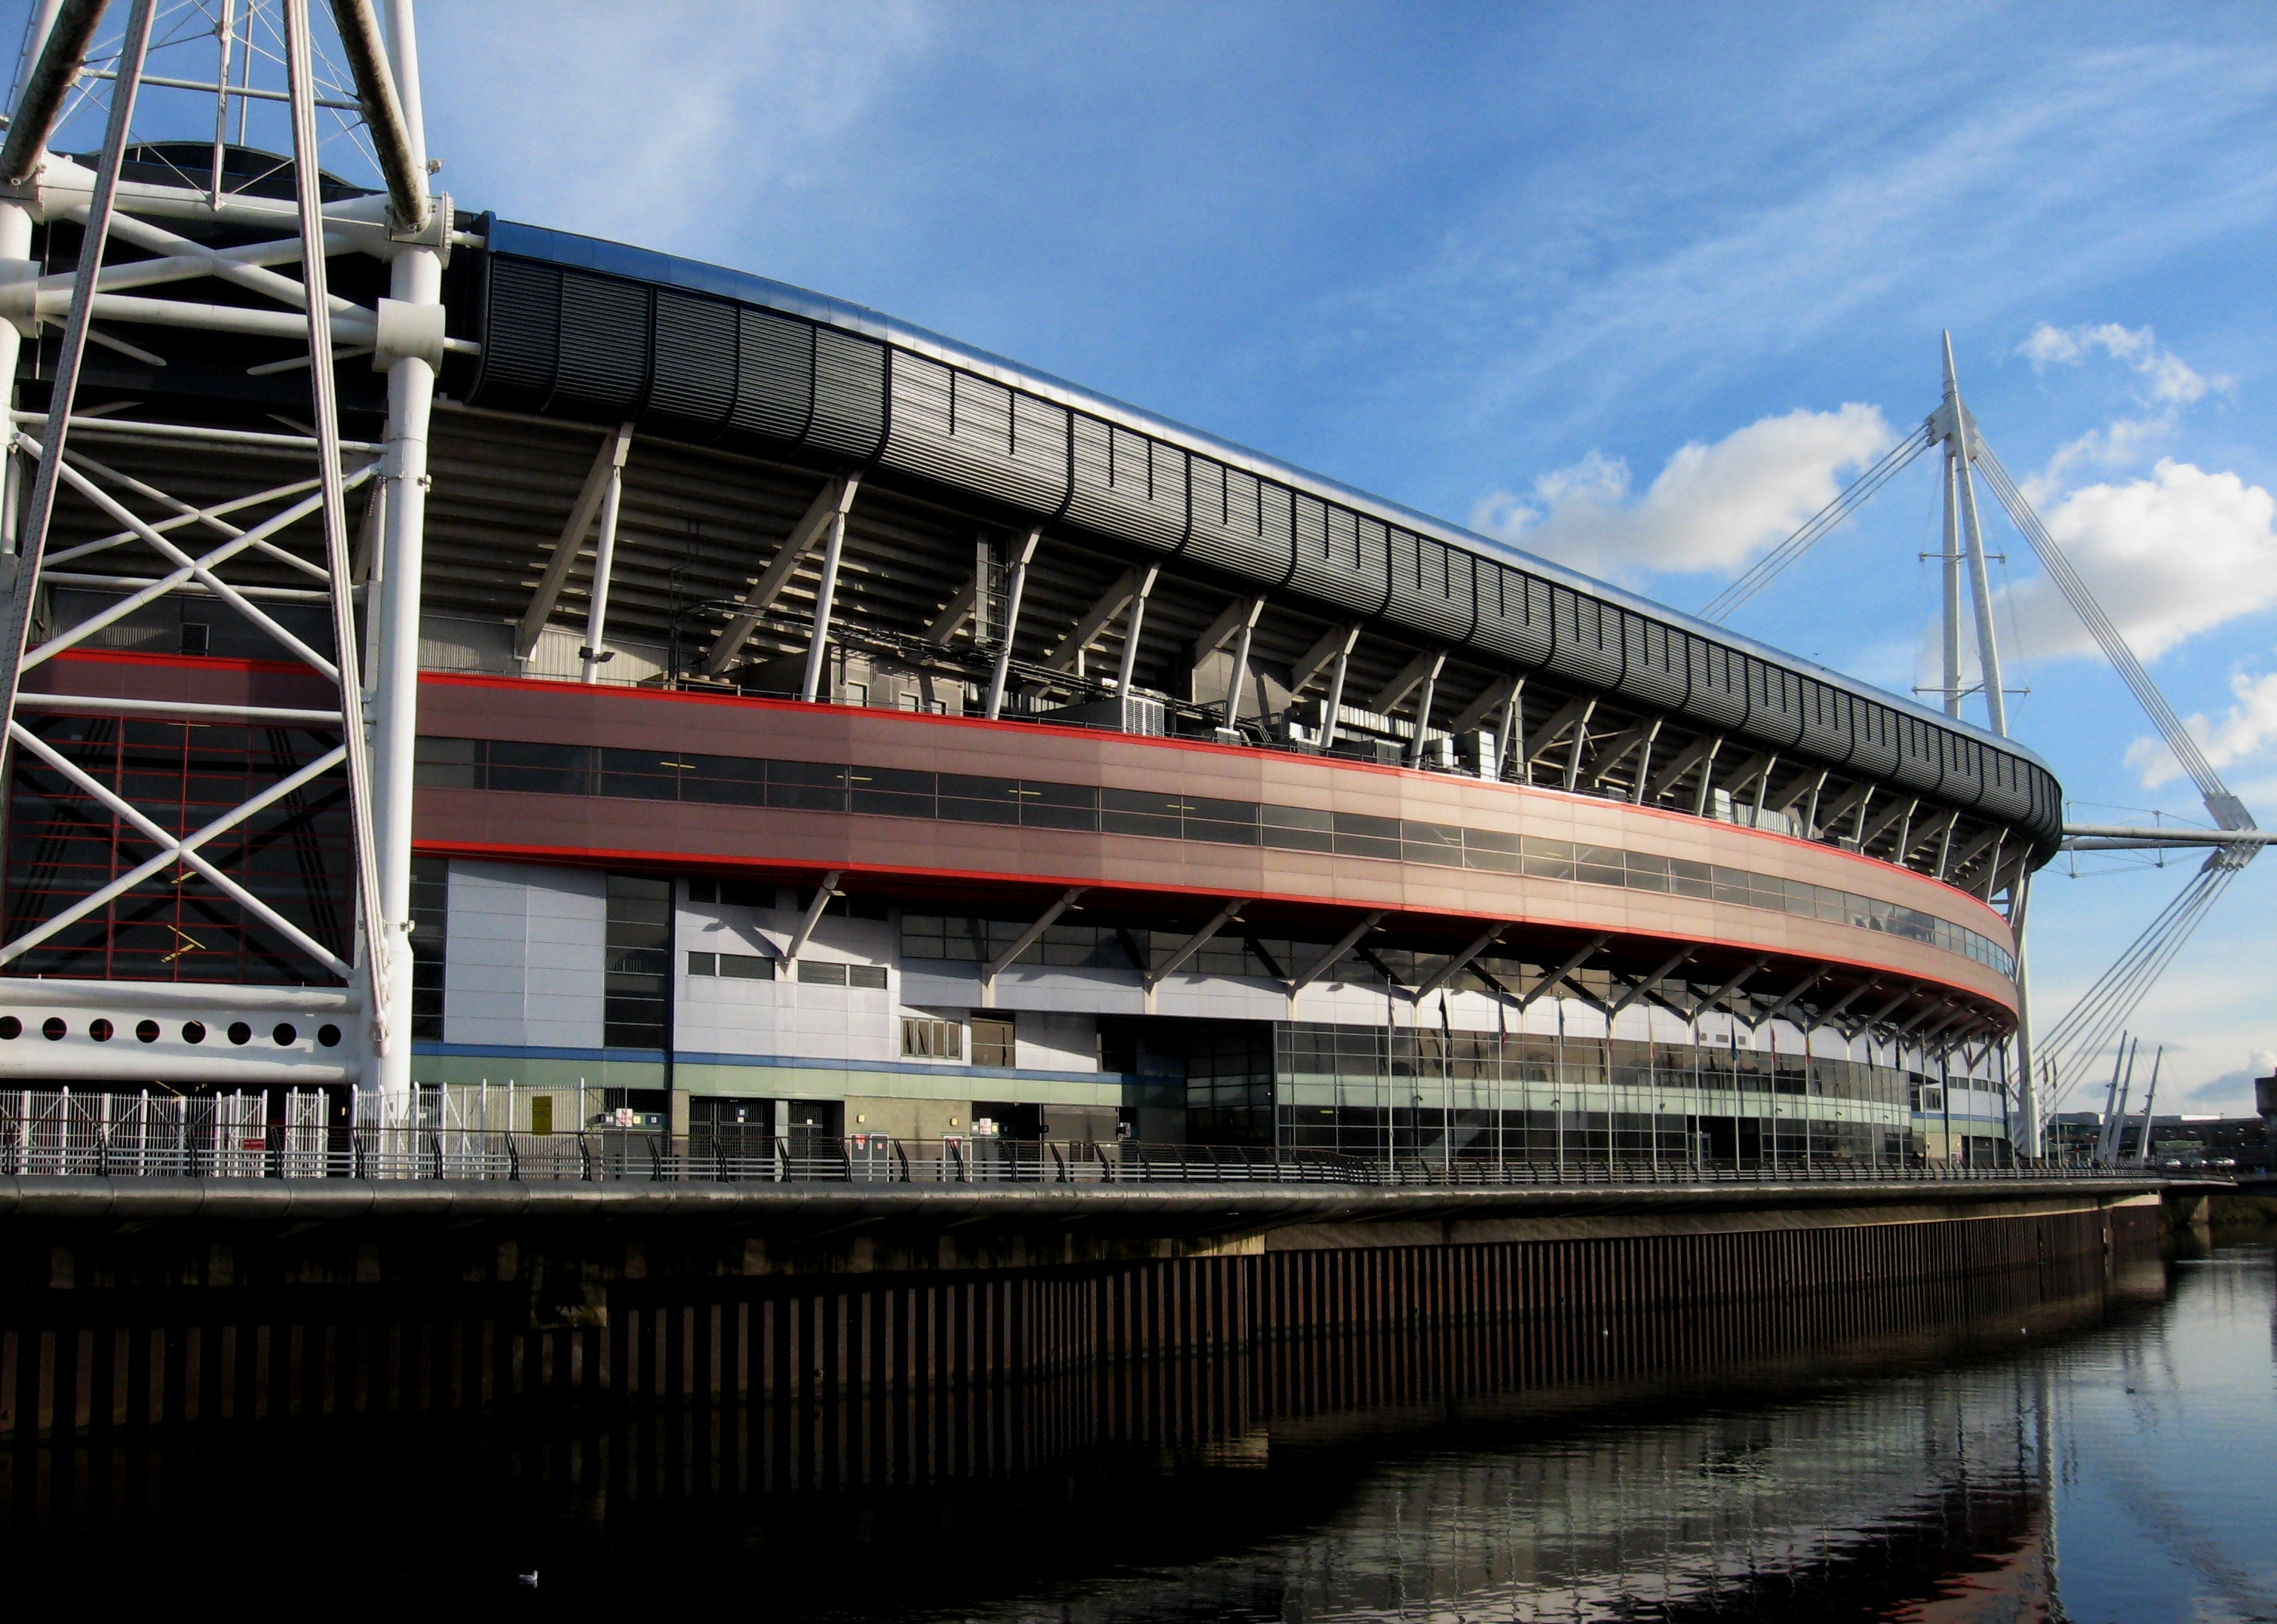 This is what the Millennium Stadium looks like when it's not raining.